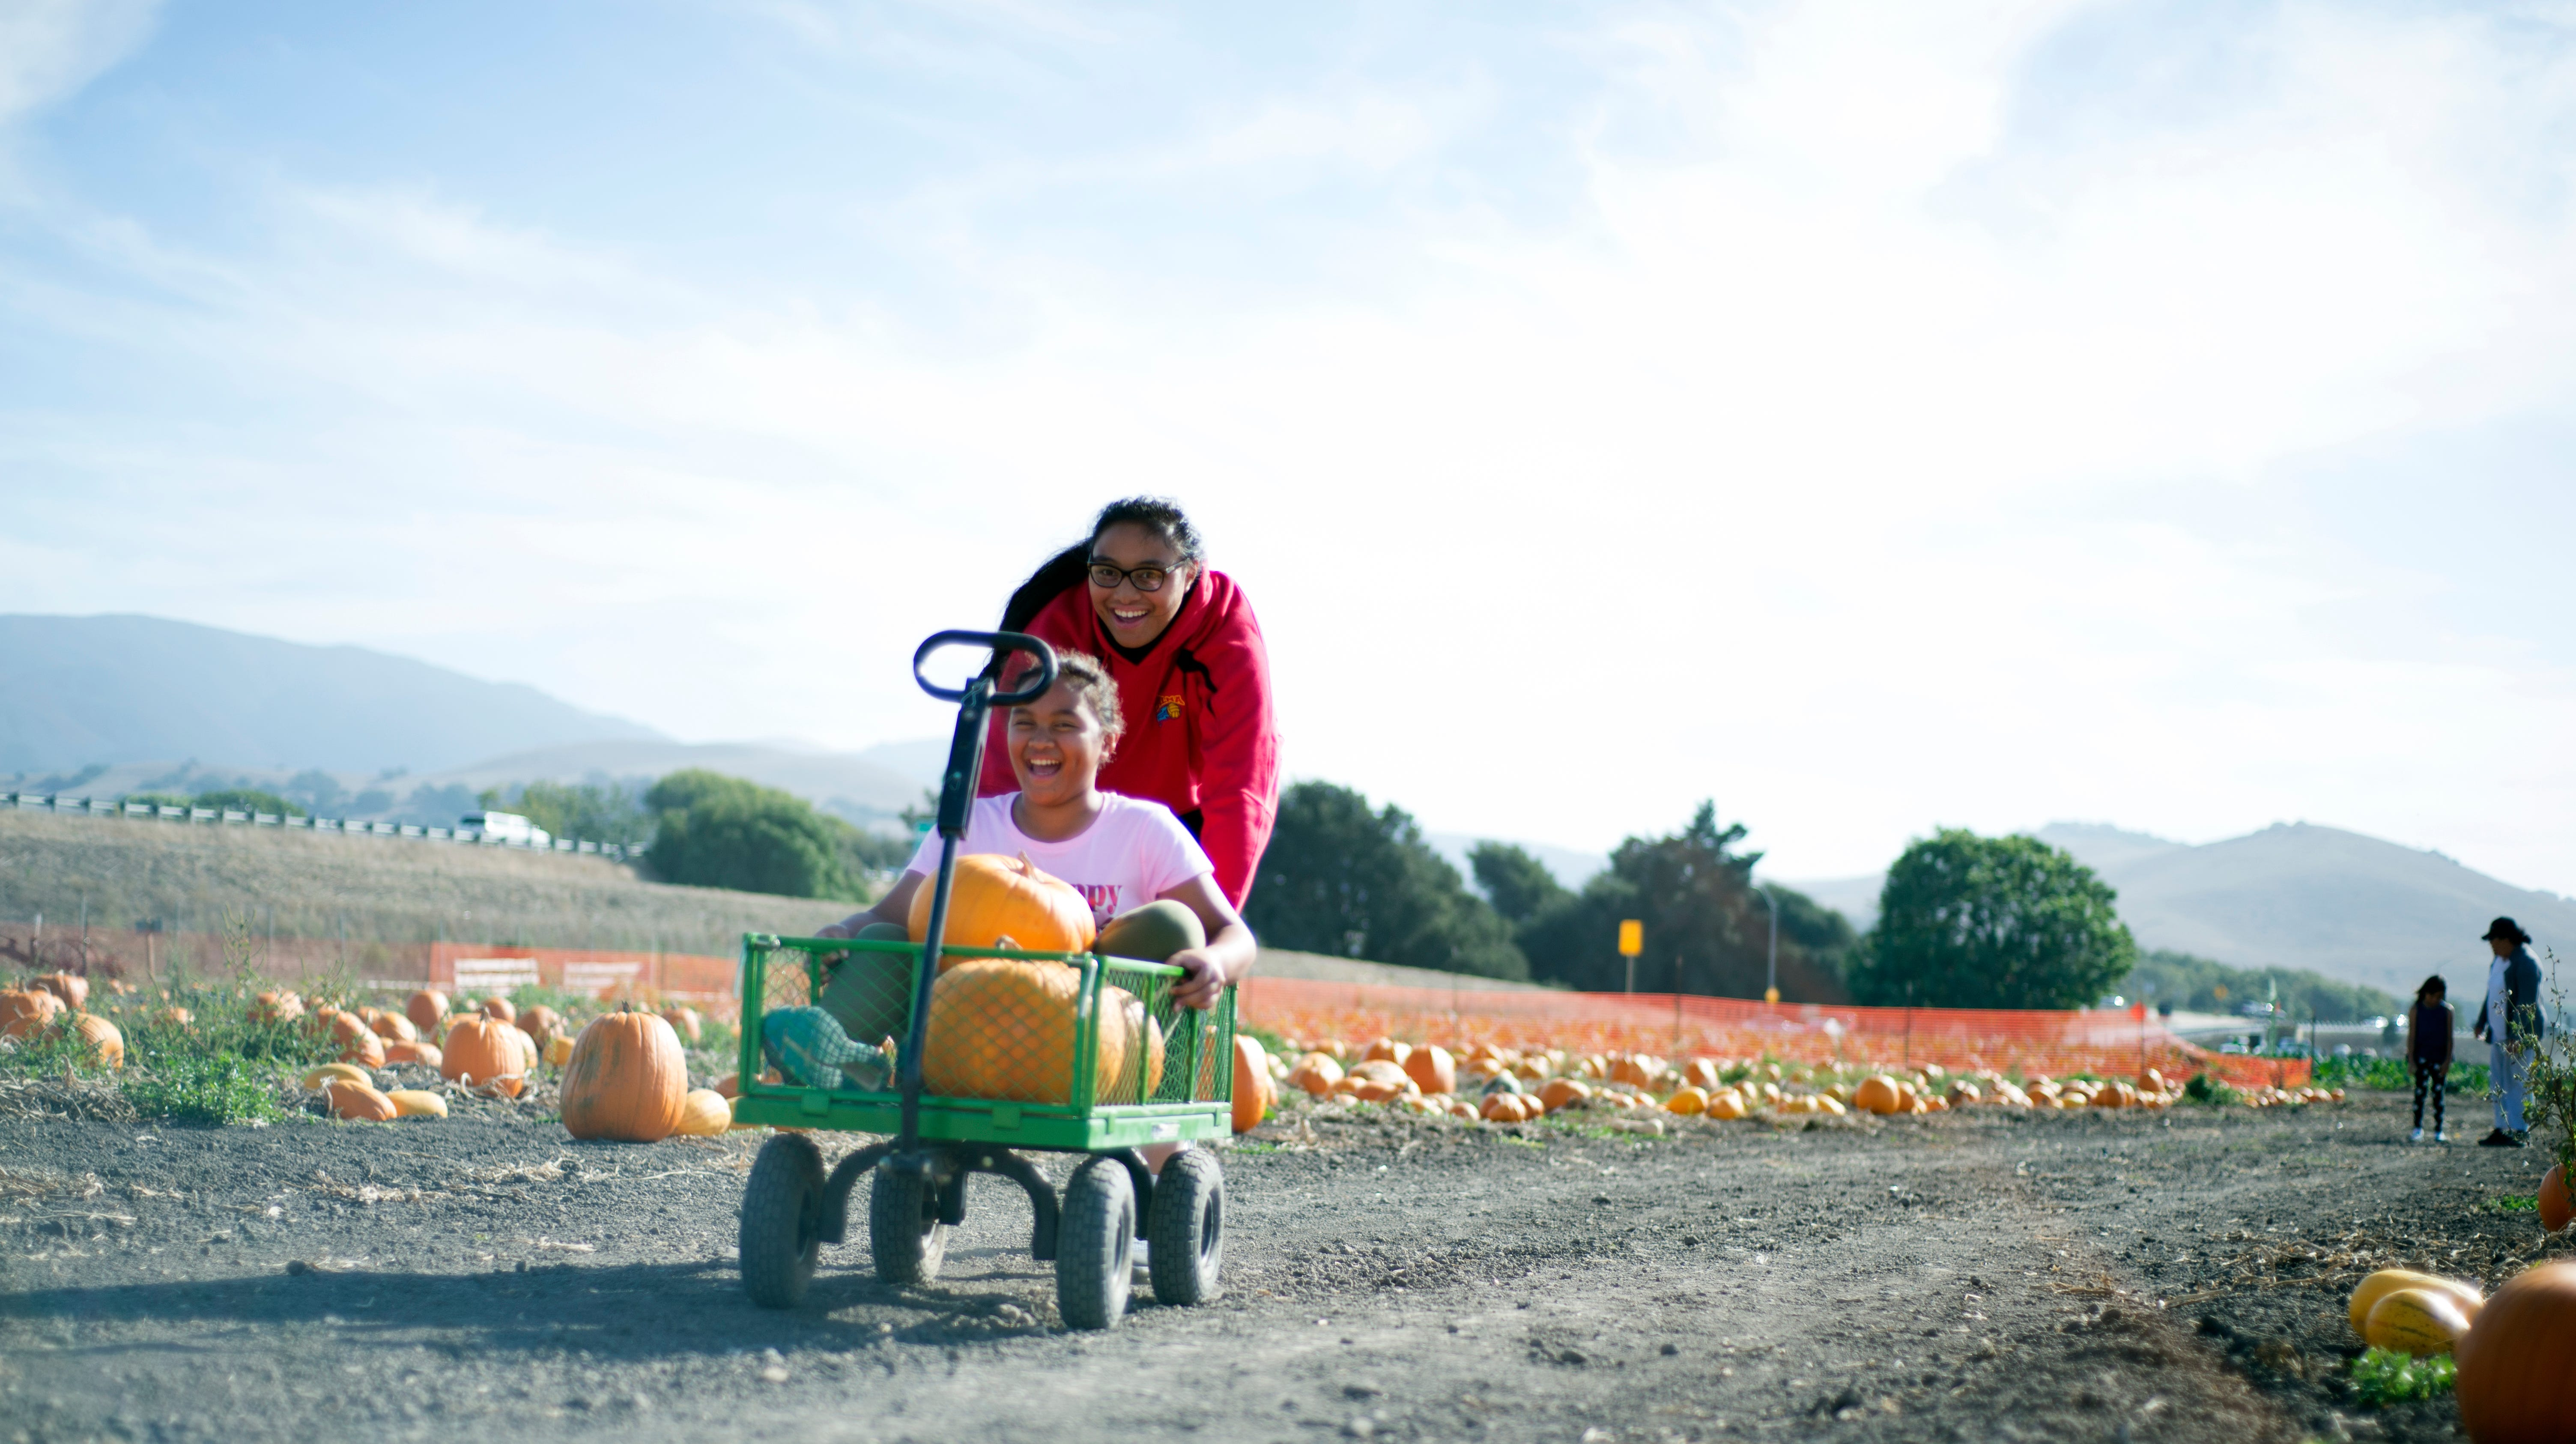 Alexis Jimenez, 16, pushes Maribeth Jimenez, 10, in a wagon between rows of pumpkins at The Farm in Salinas on Oct. 9, 2018.